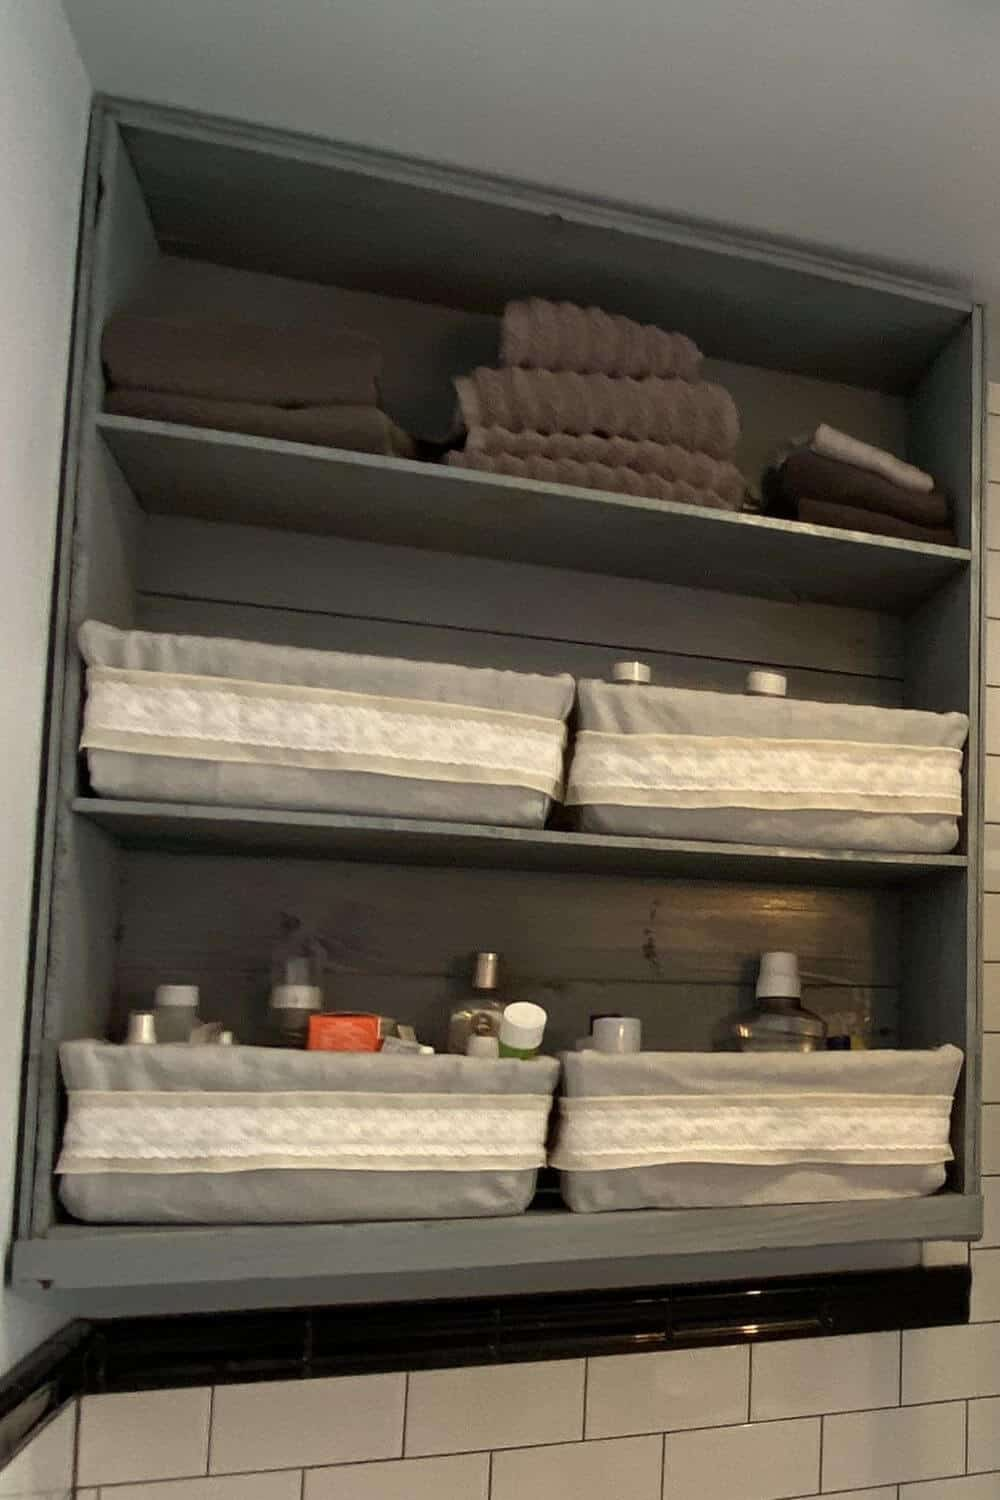 Gary bathroom shelves with towels and storage bins